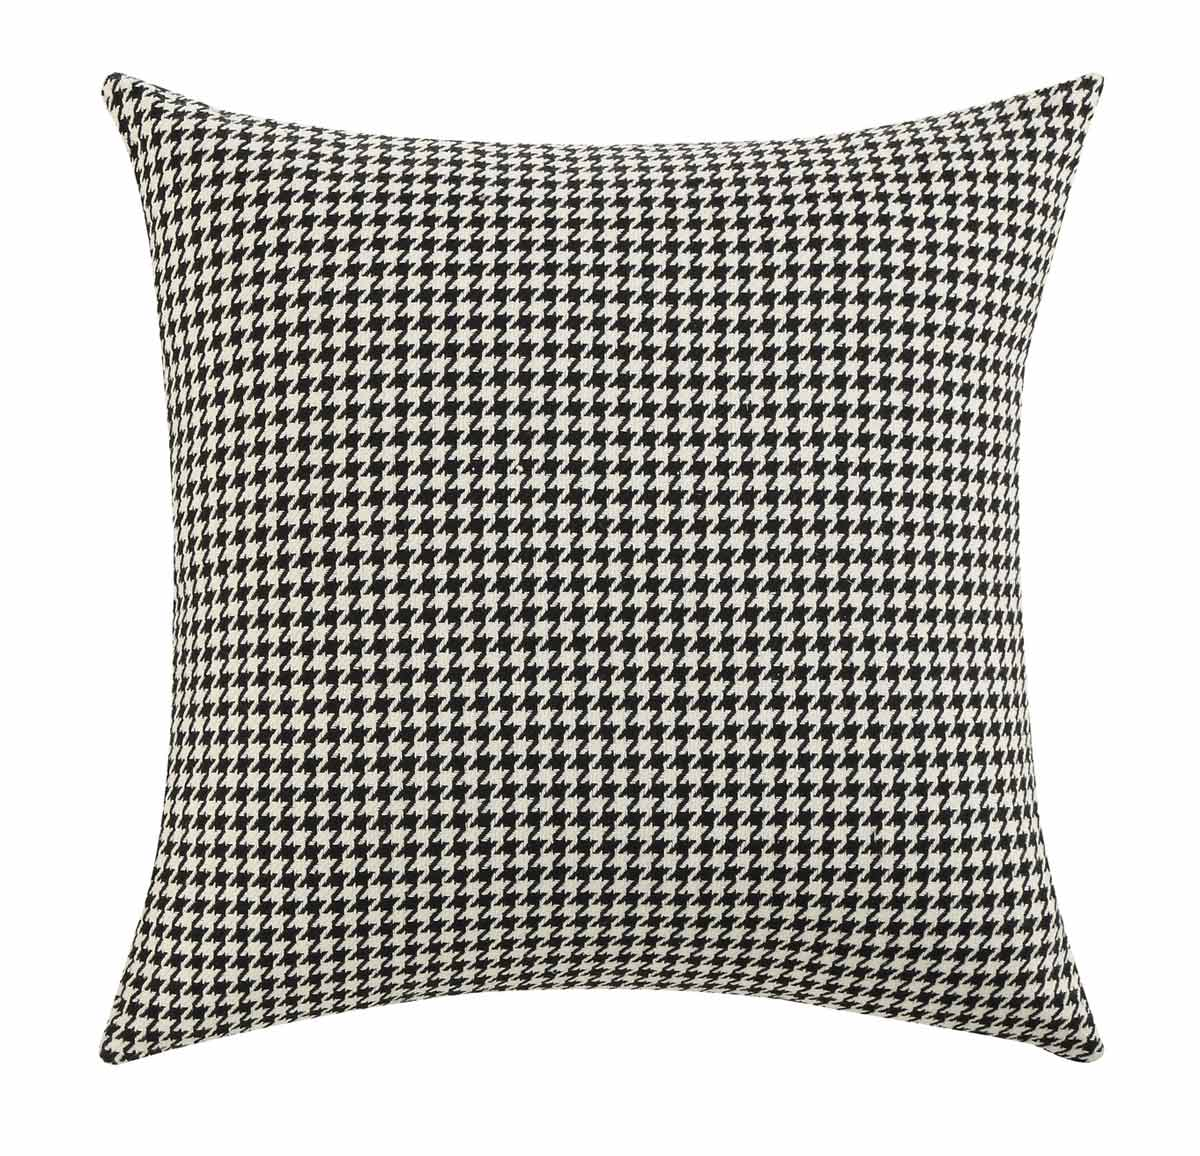 905340 Houndstooth Pillow